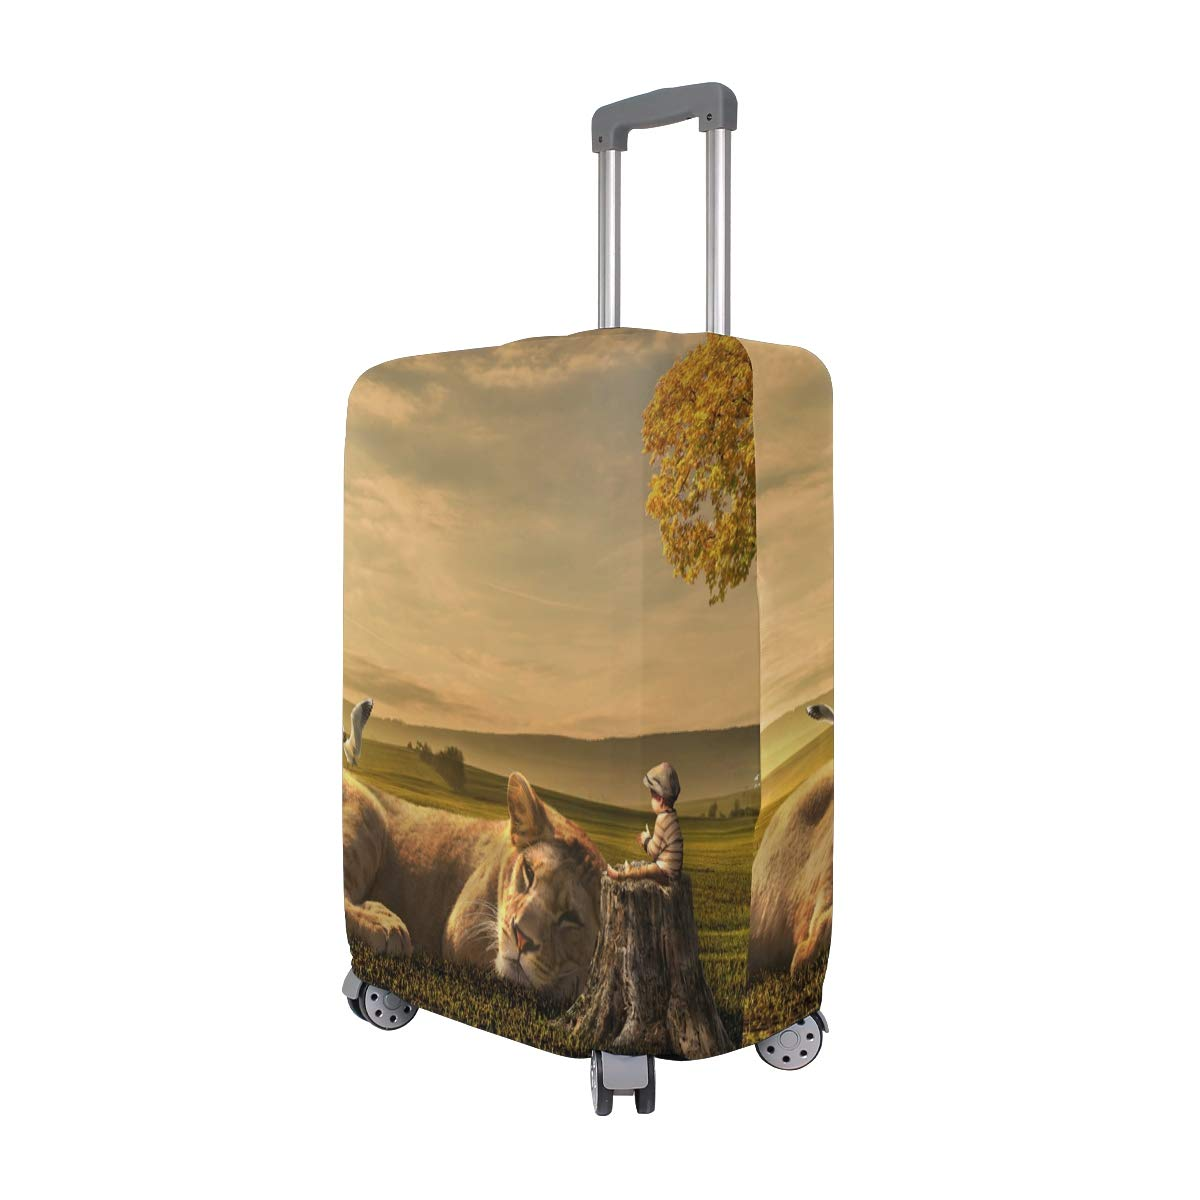 Sunset Little Boy Lion Dream suitcase cover elastic suitcase cover zipper luggage case removable cleaning suitable for 29-32 trunk cover